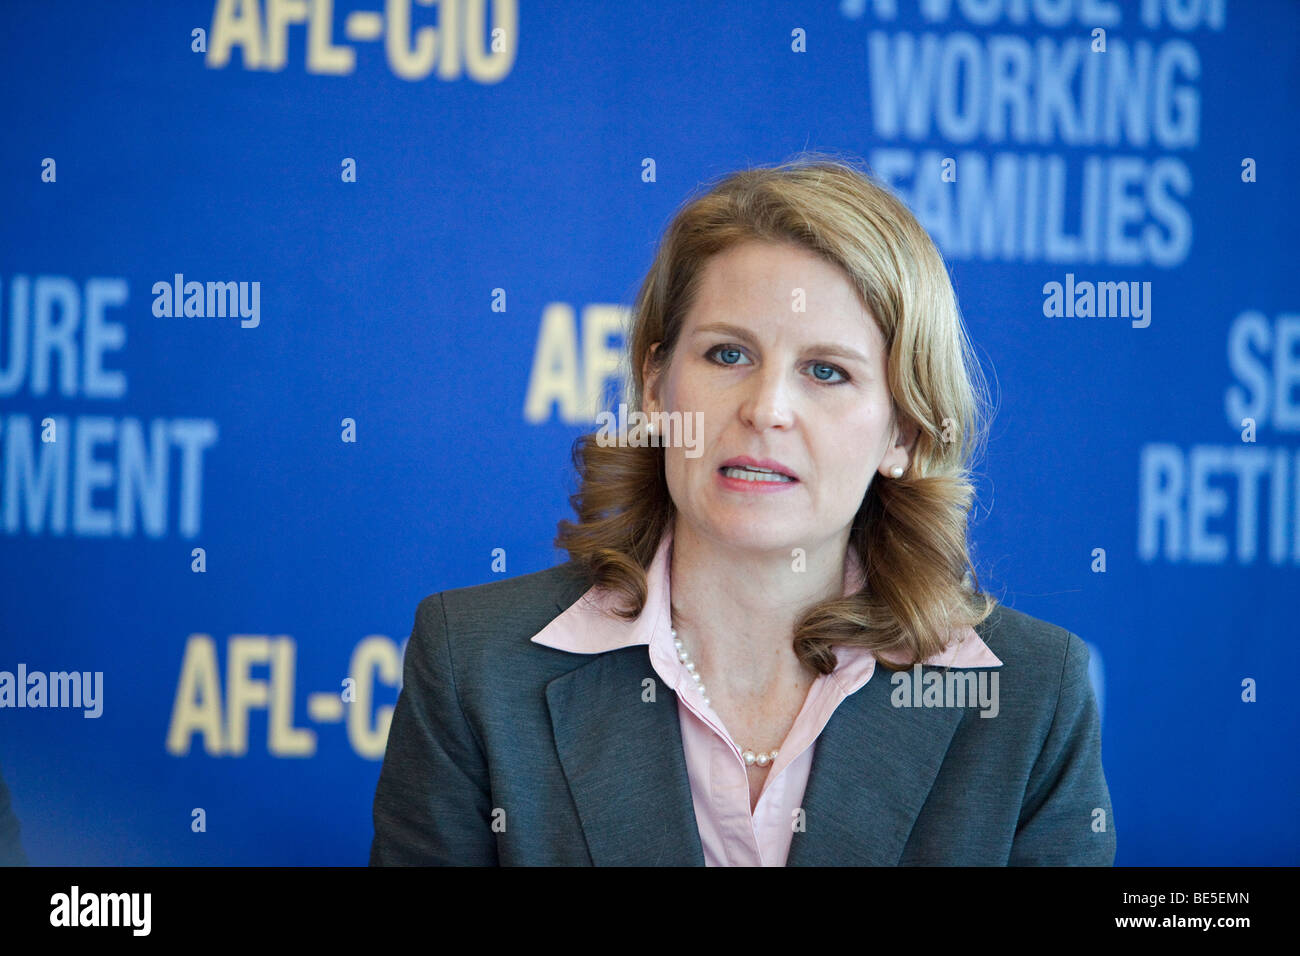 Pittsburgh, Pennsylvania - AFL-CIO Secretary-Treasurer Liz Shuler. - Stock Image